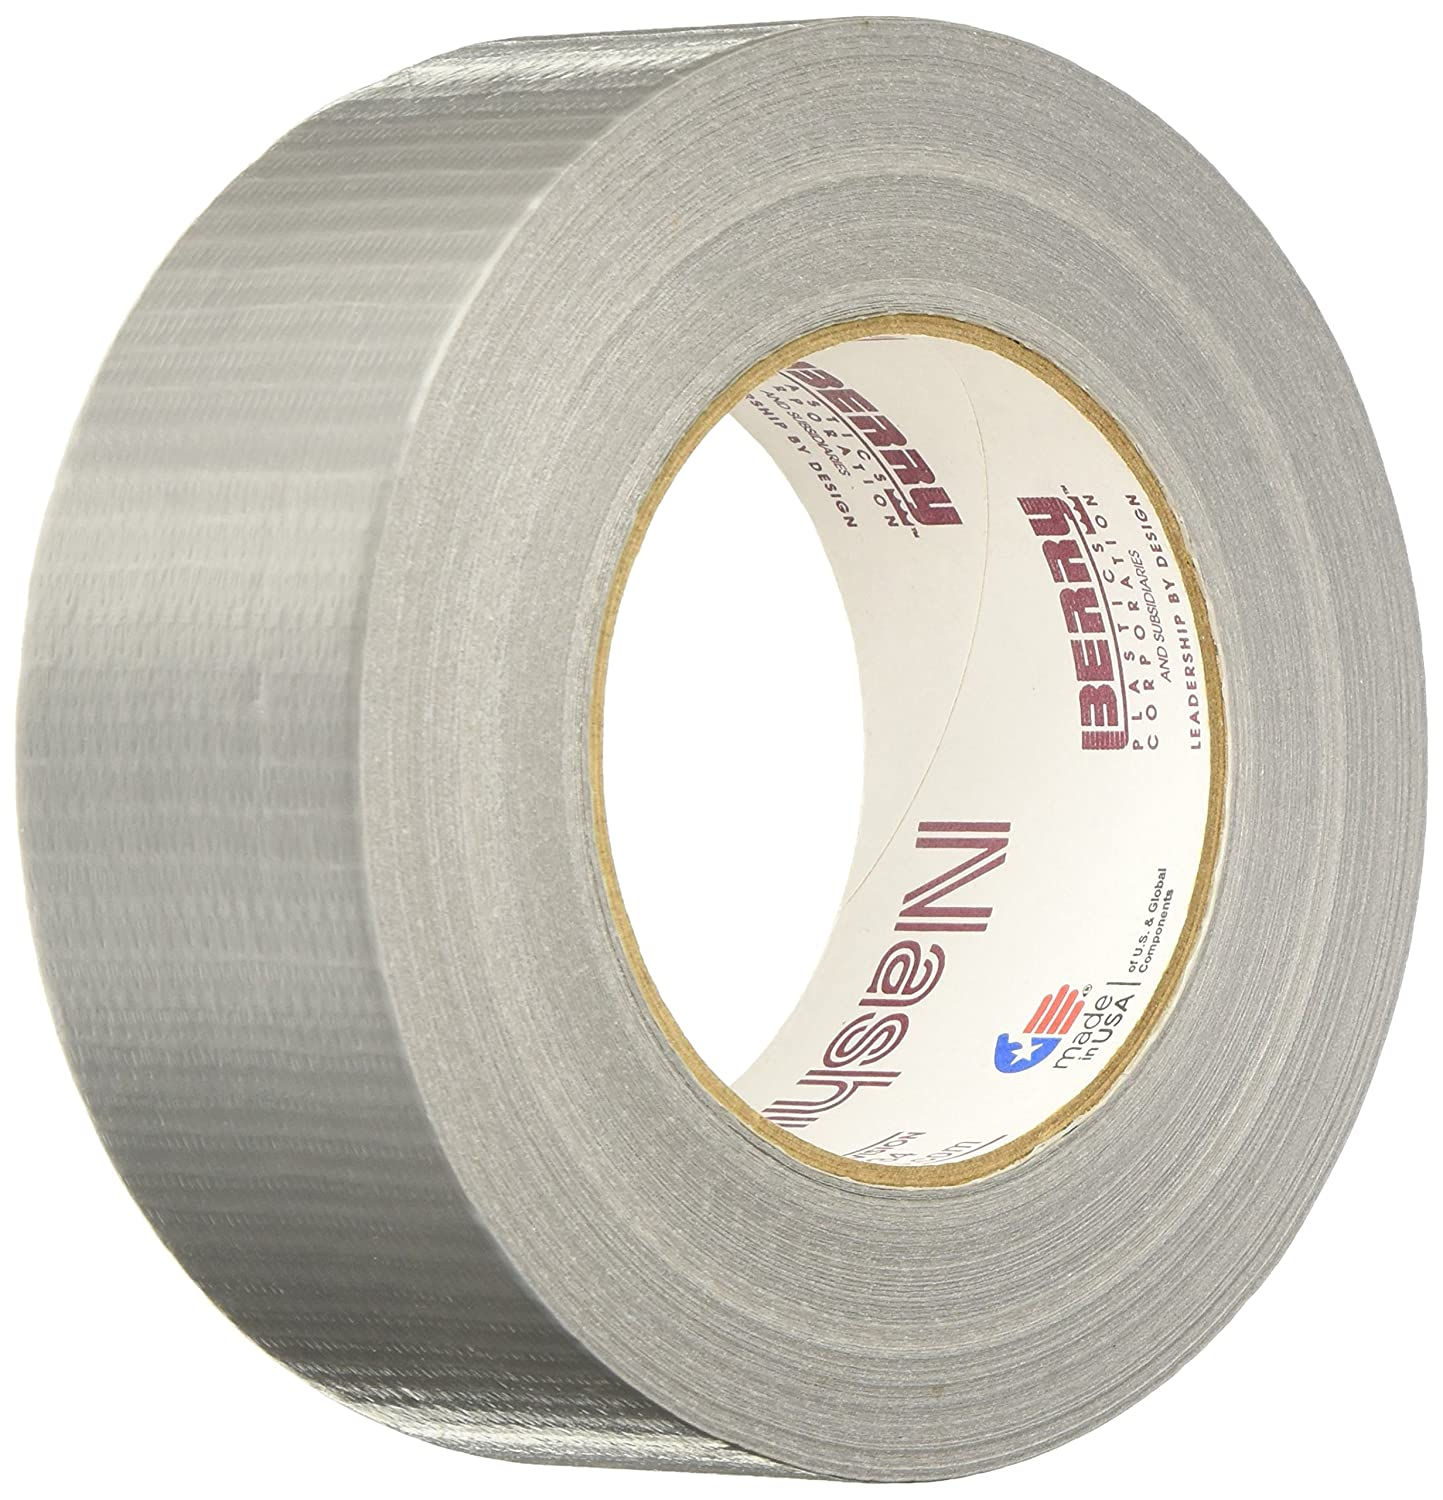 Lot Of 5 NASHUA 307 Duct Tape,48mm x 55m,7 mil,Silver Free Shipping